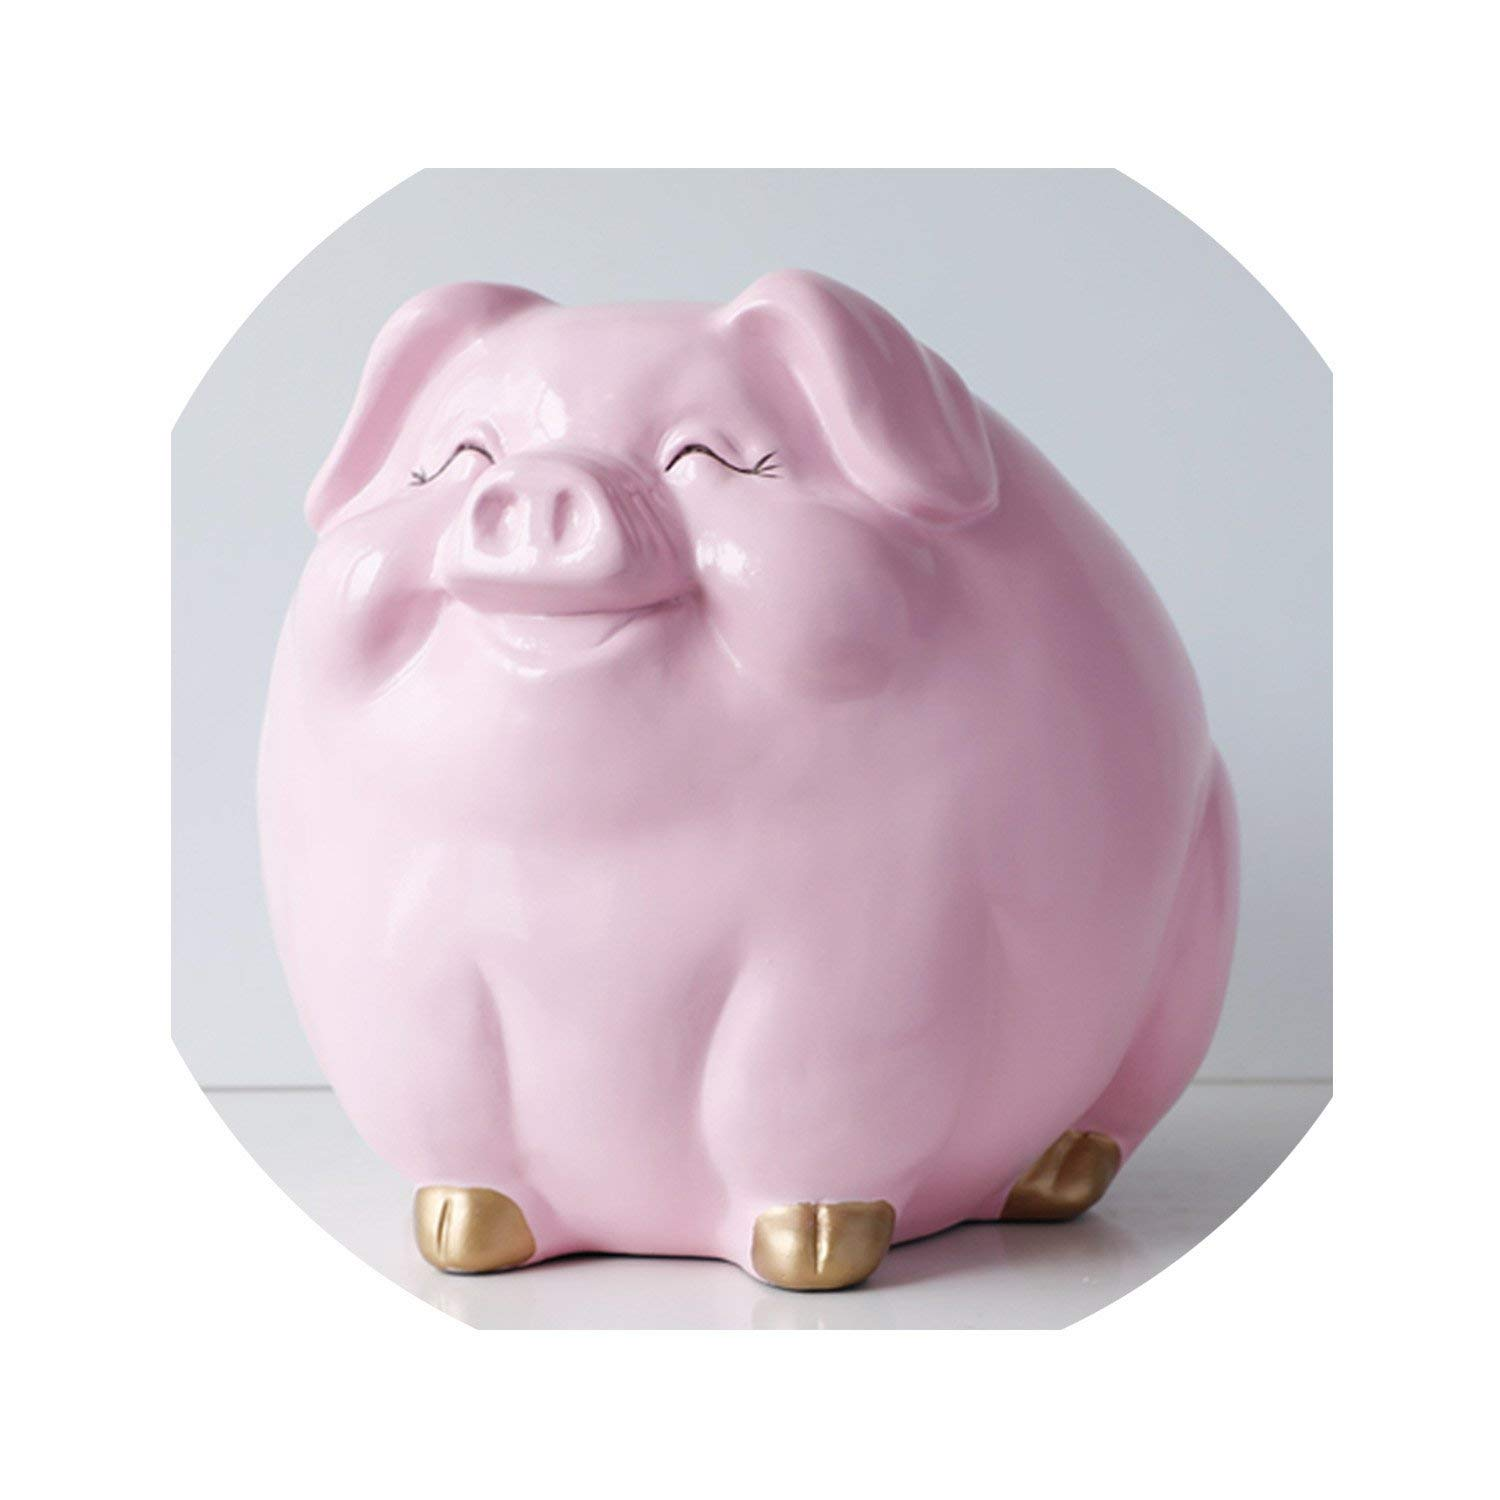 Pig Money Box for Children Gift Resin Animal Statue case Coin Bank Box Creative Fun Pig Money Boxes for Kids Cute Piggy Banks,Pink by Goodbye-money bank